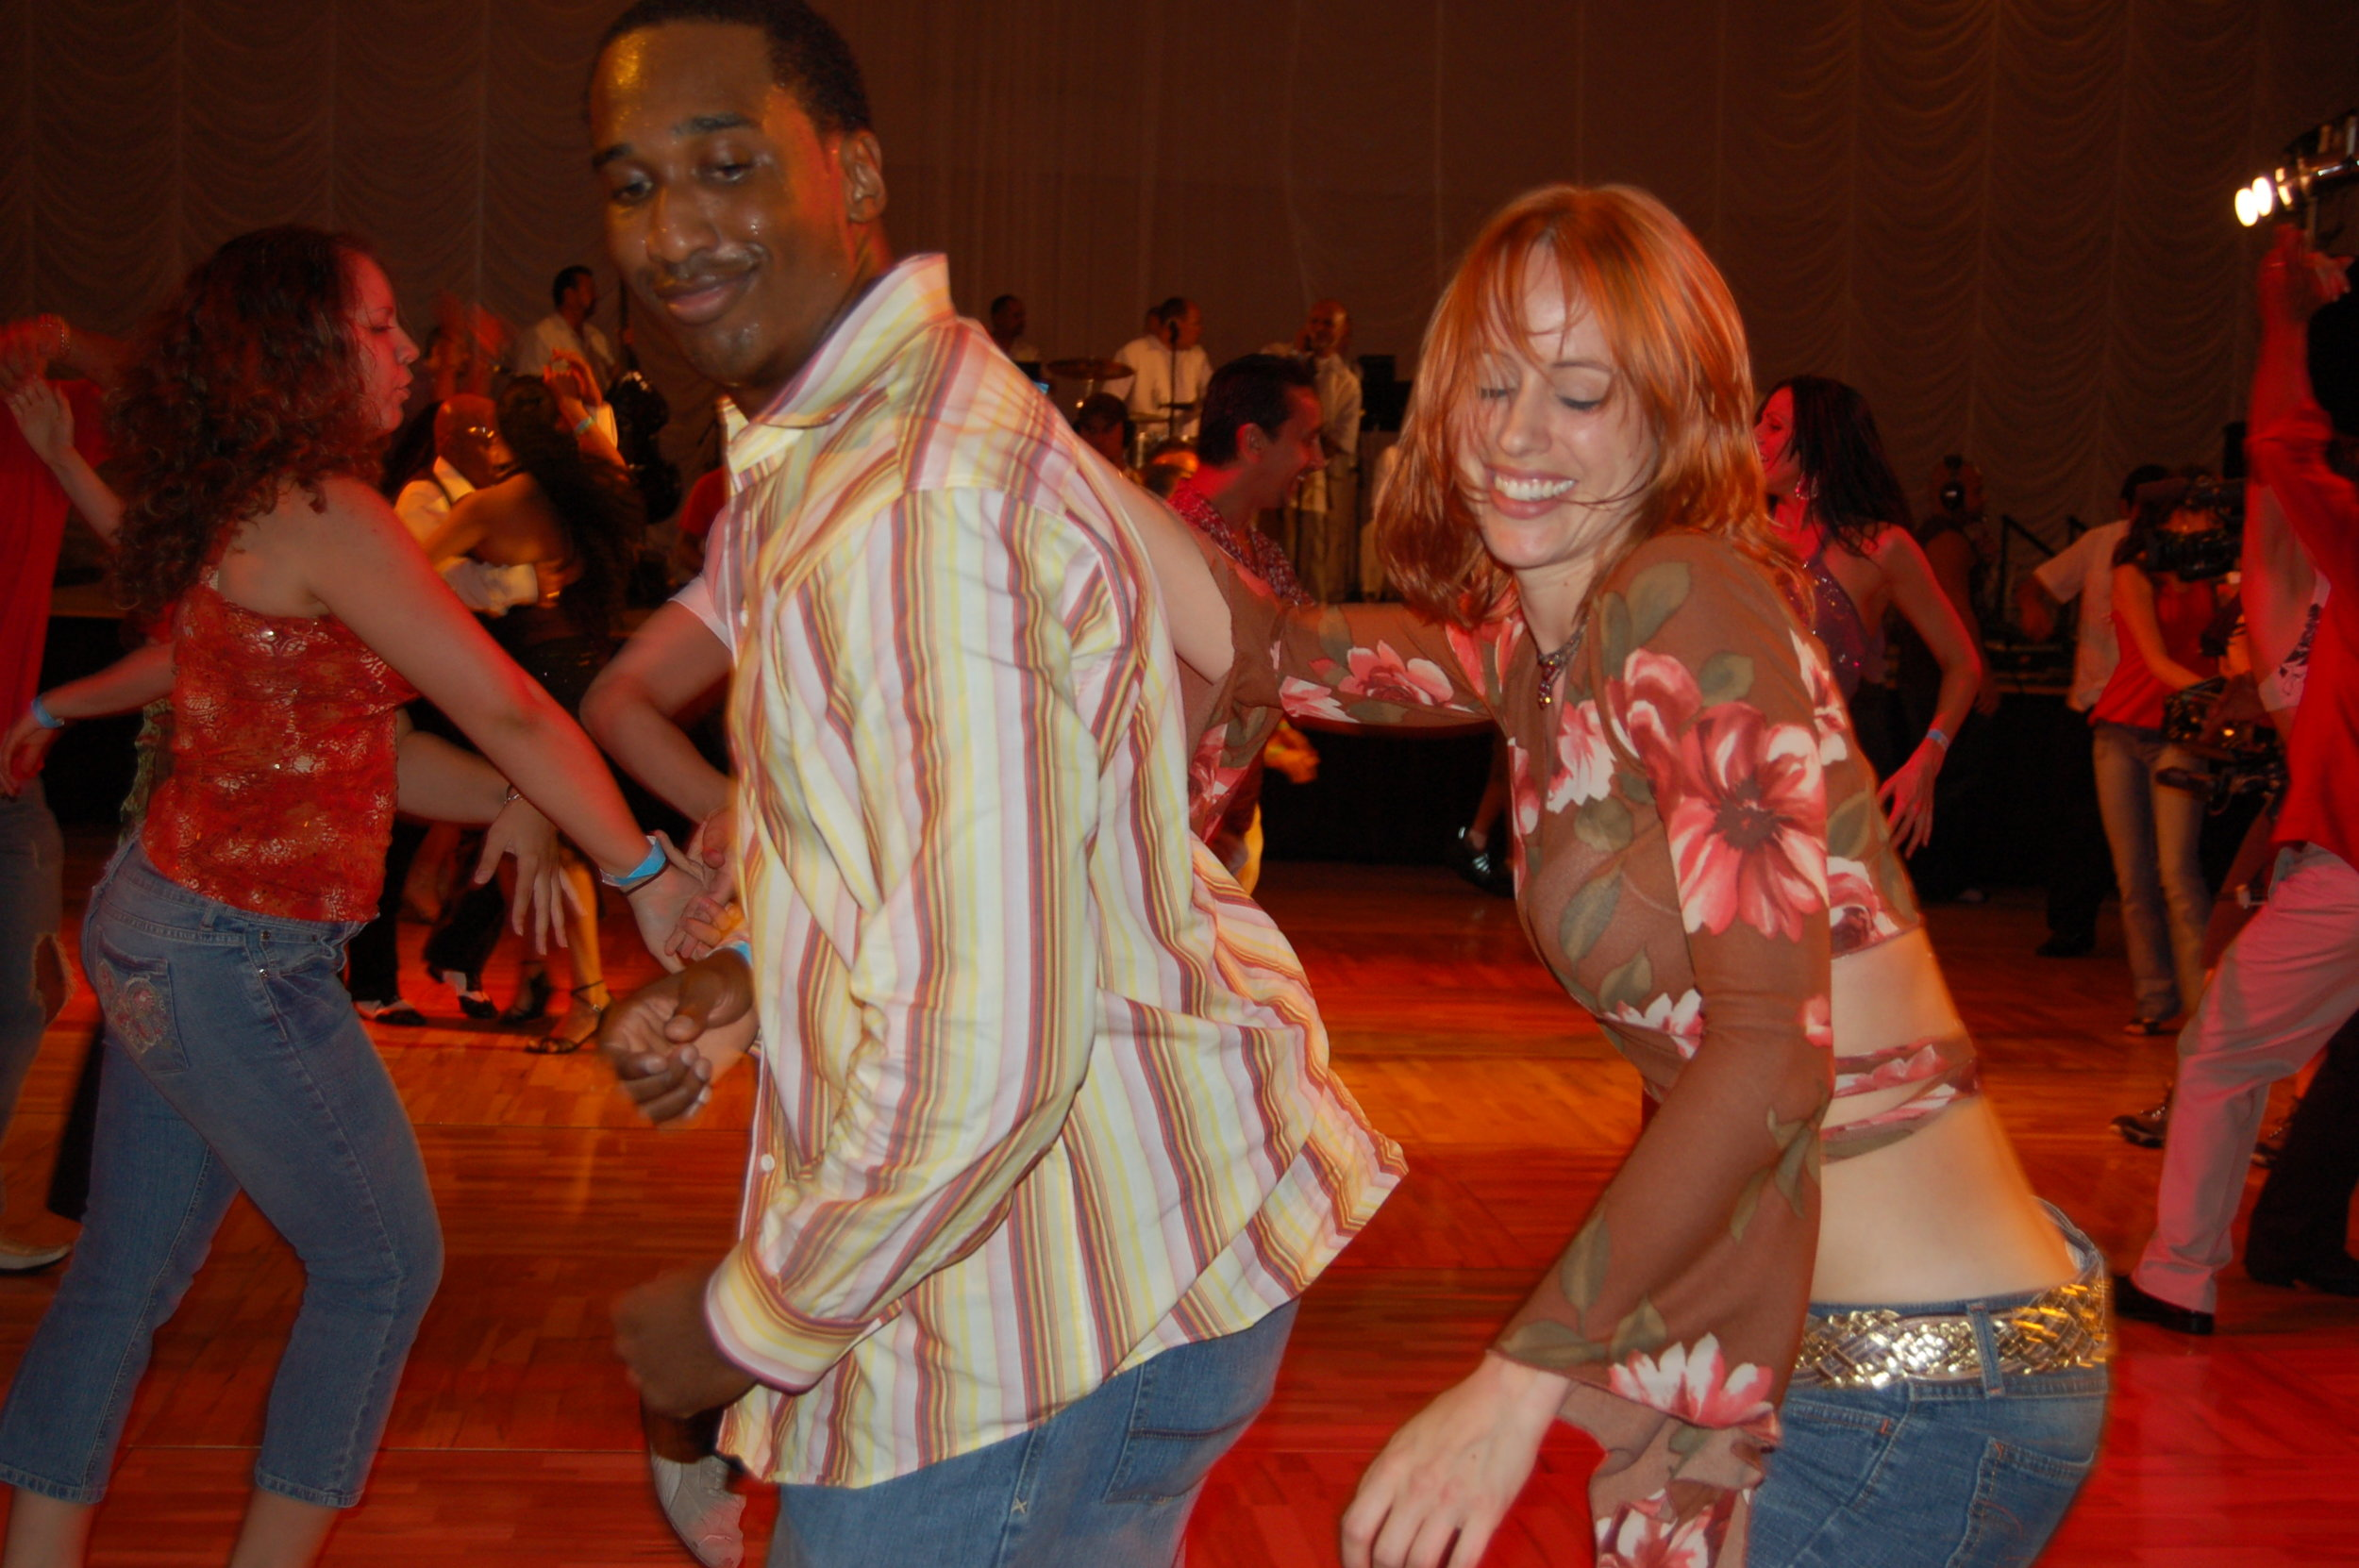 Salsa/Mambo - Juliet offers classes in salsa on-1 and salsa on-2 as well as salsa dance history. Her teaching focus on musicality and creative expression. Juliet has been teaching salsa since 1999 and has been responsible for precipitating a clave obsession in thousands of students.